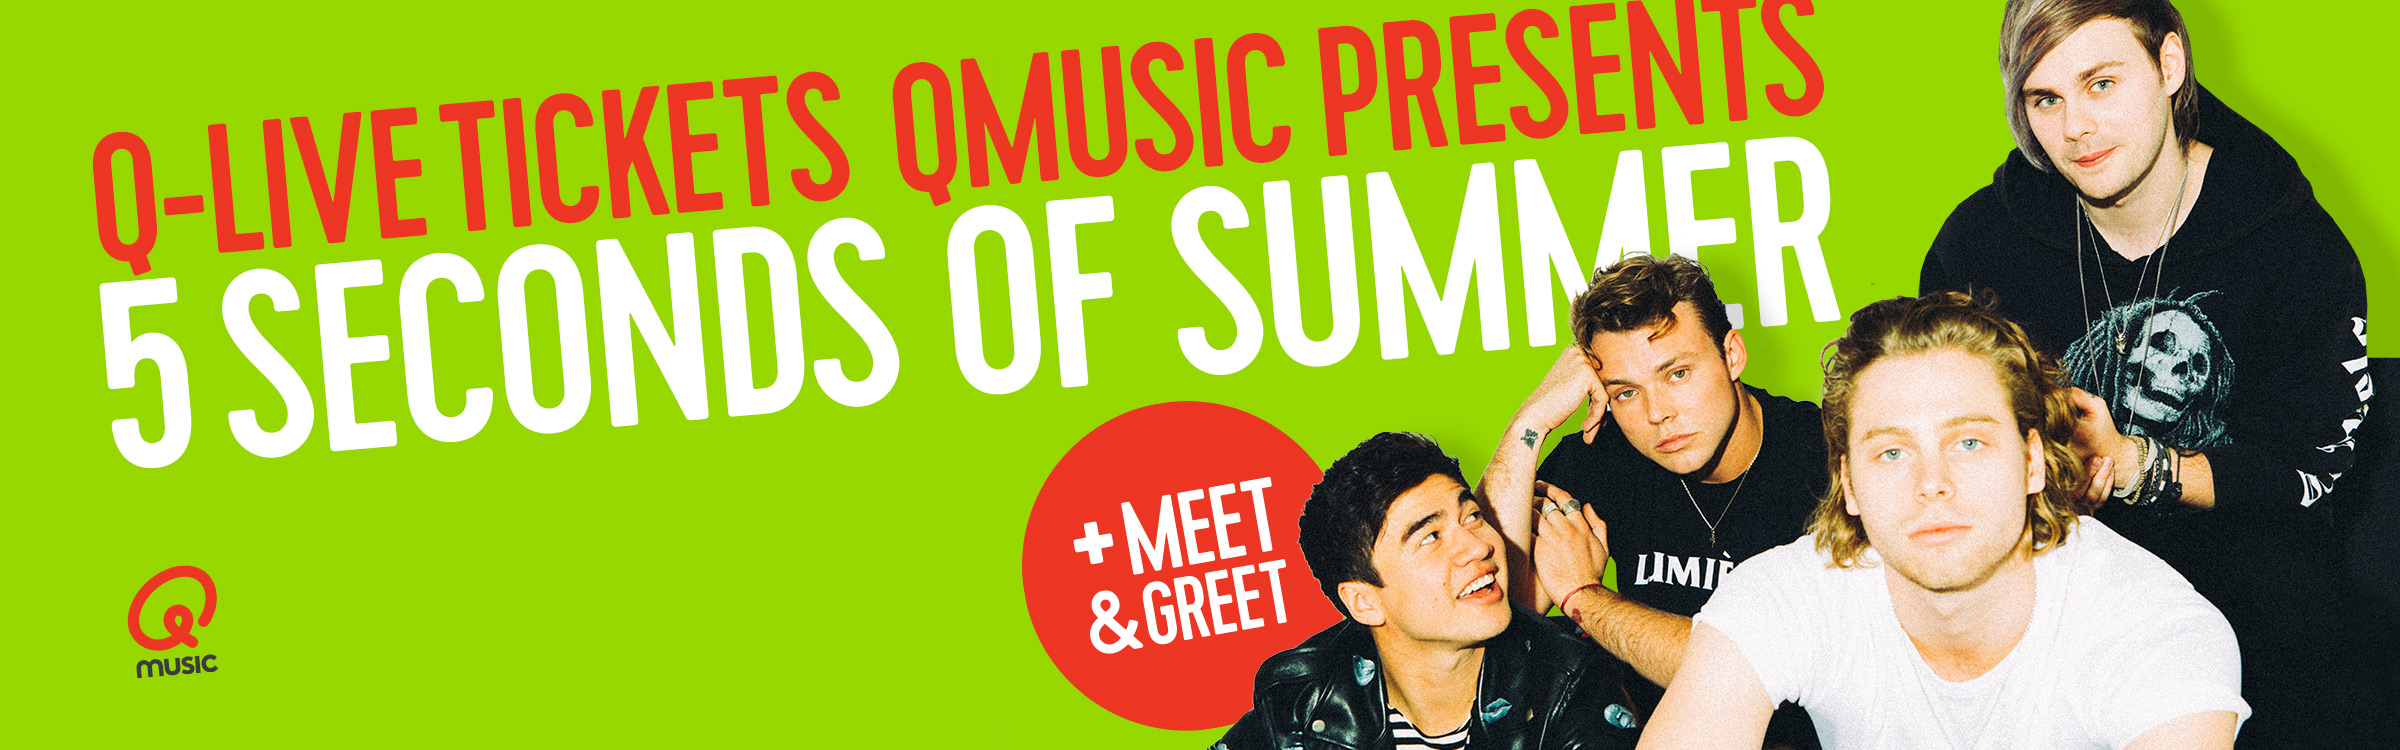 Qmusic actionheader 5sos